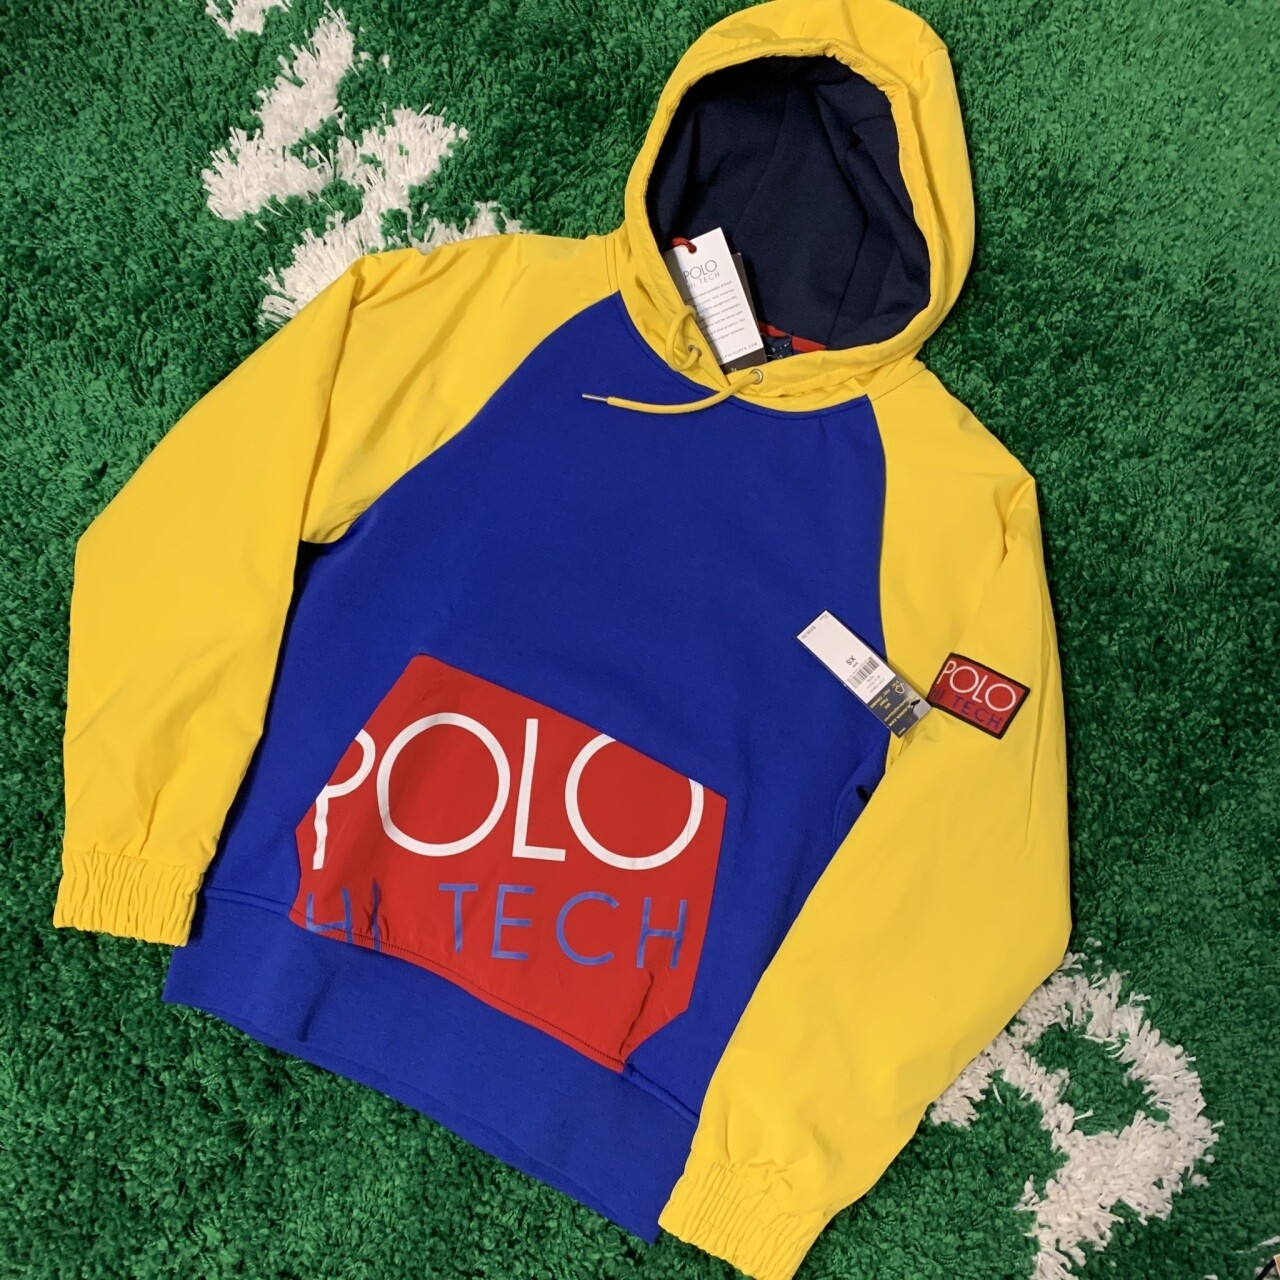 Polo Hi Tech Sweater Size XS